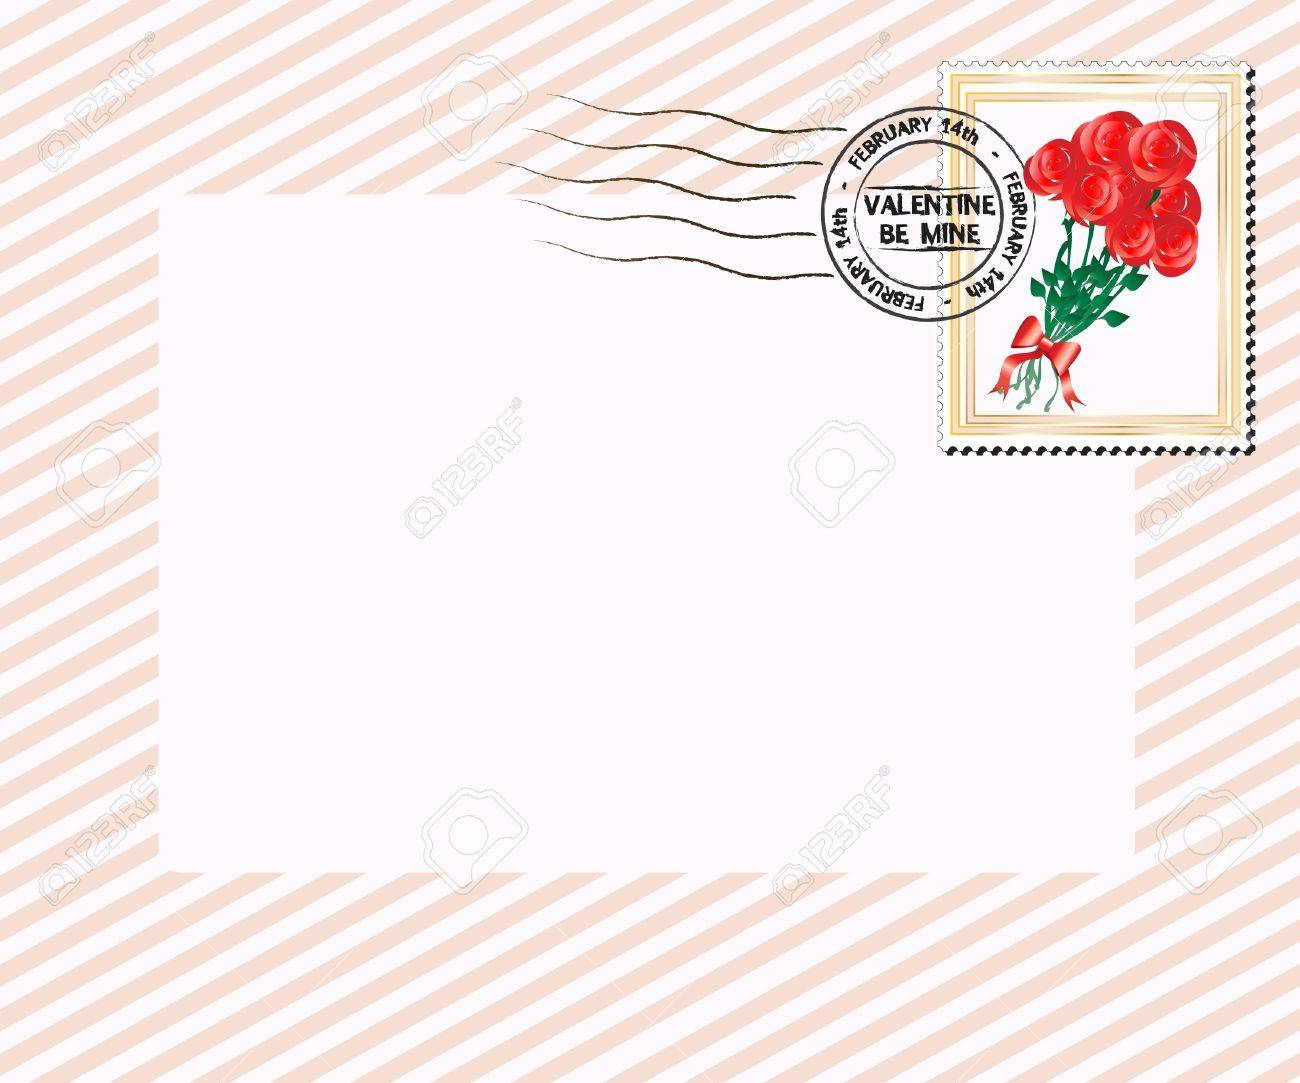 709dbe18d043 A Valentine s Day Letter